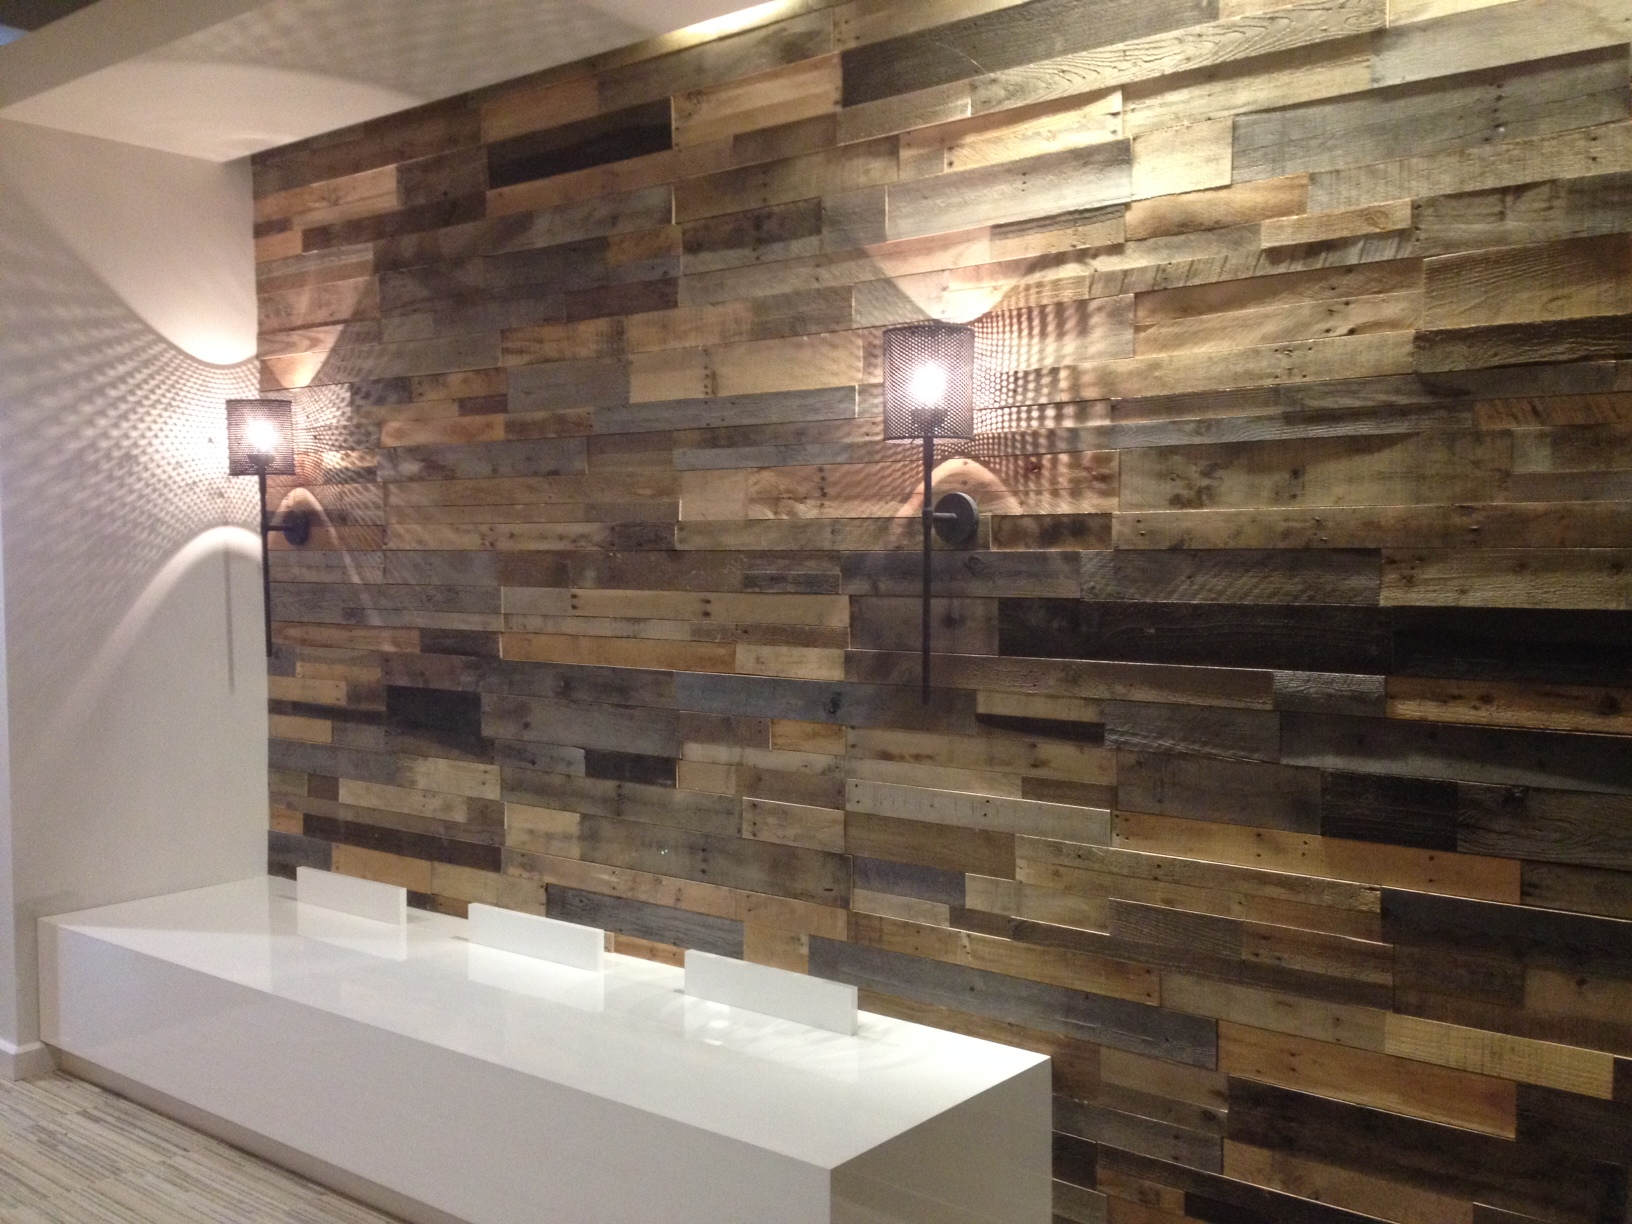 Remarkable Pallet Wall Bathroom Of Office Wood Acnn Decor